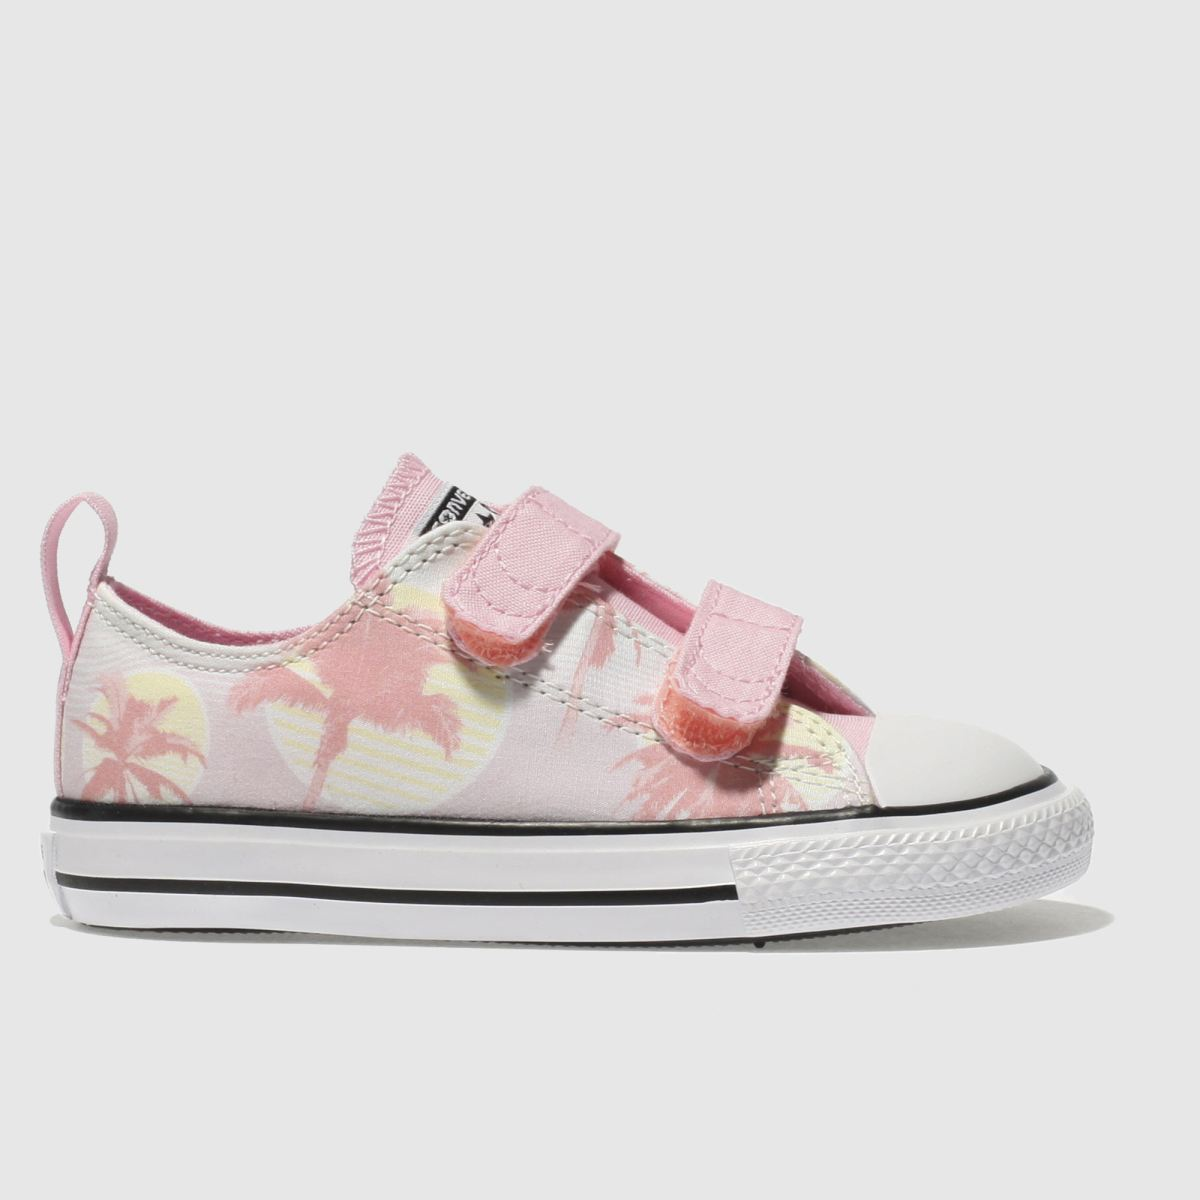 Converse Pink Chuck Taylor All Star Lo 2 V Trainers Toddler